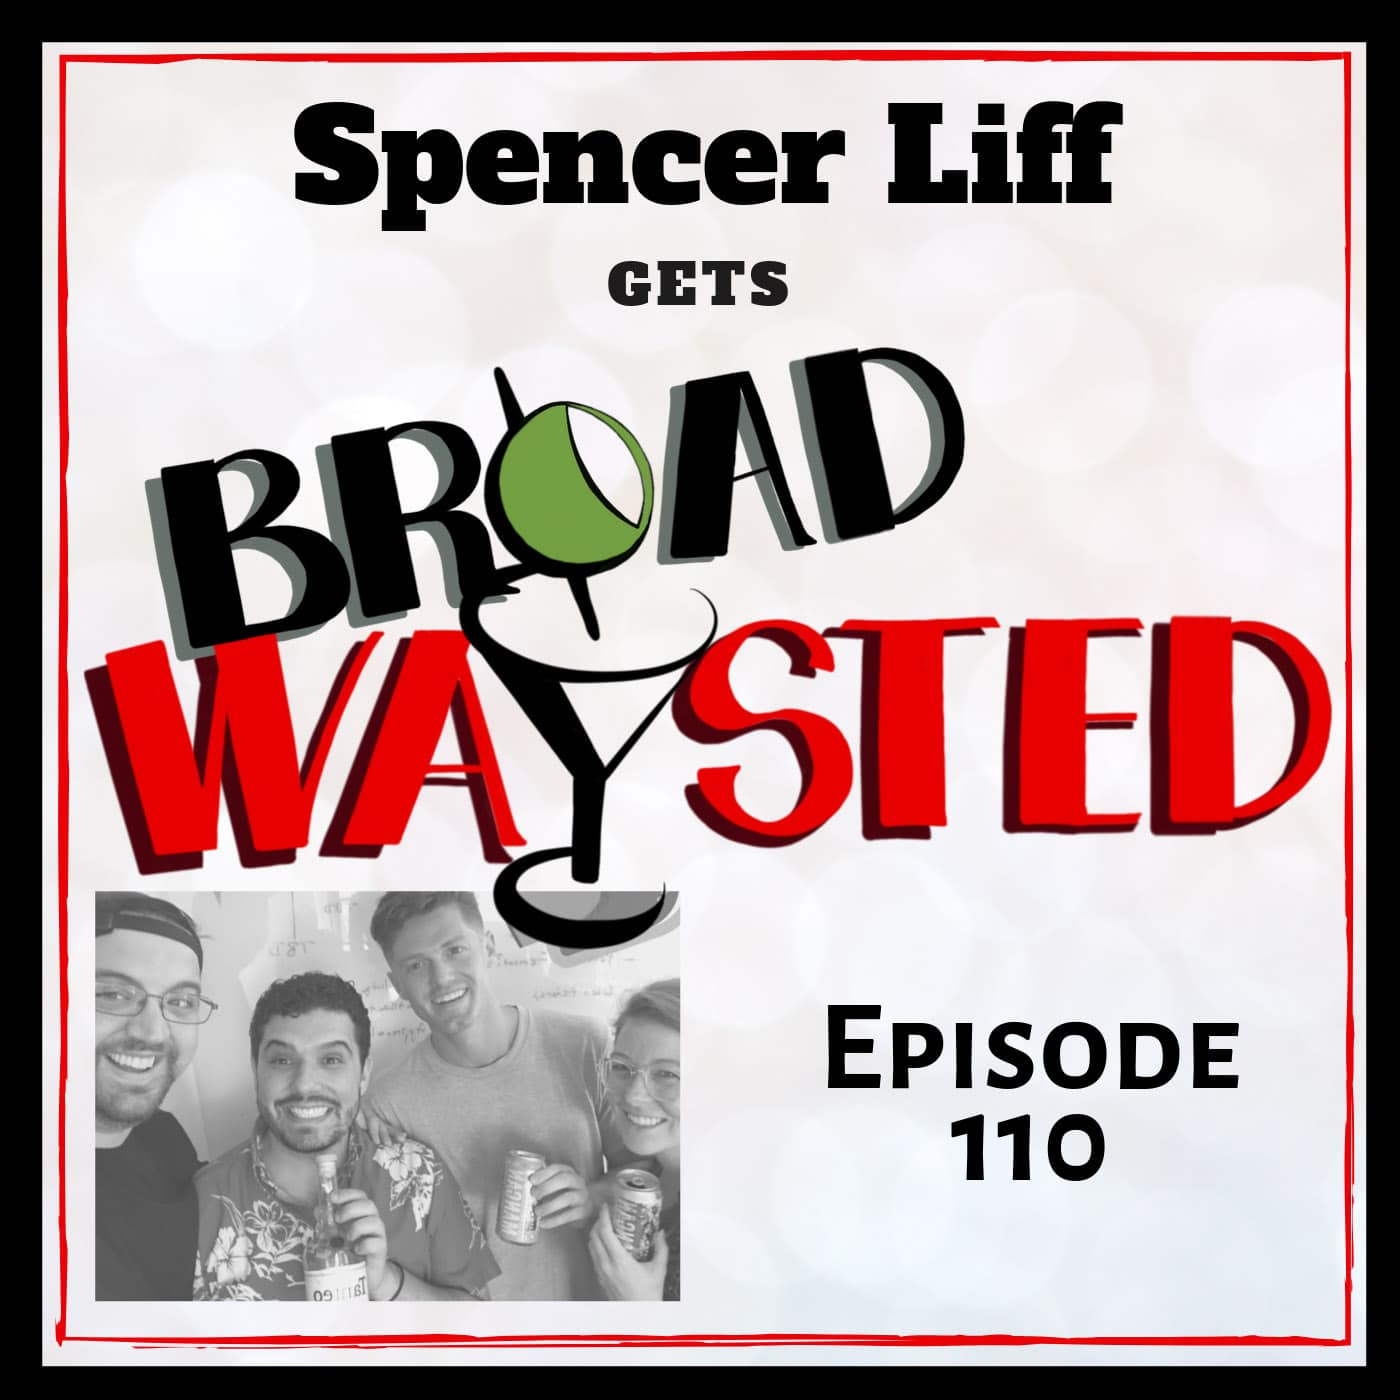 Broadwaysted Ep 110 Spencer Liff